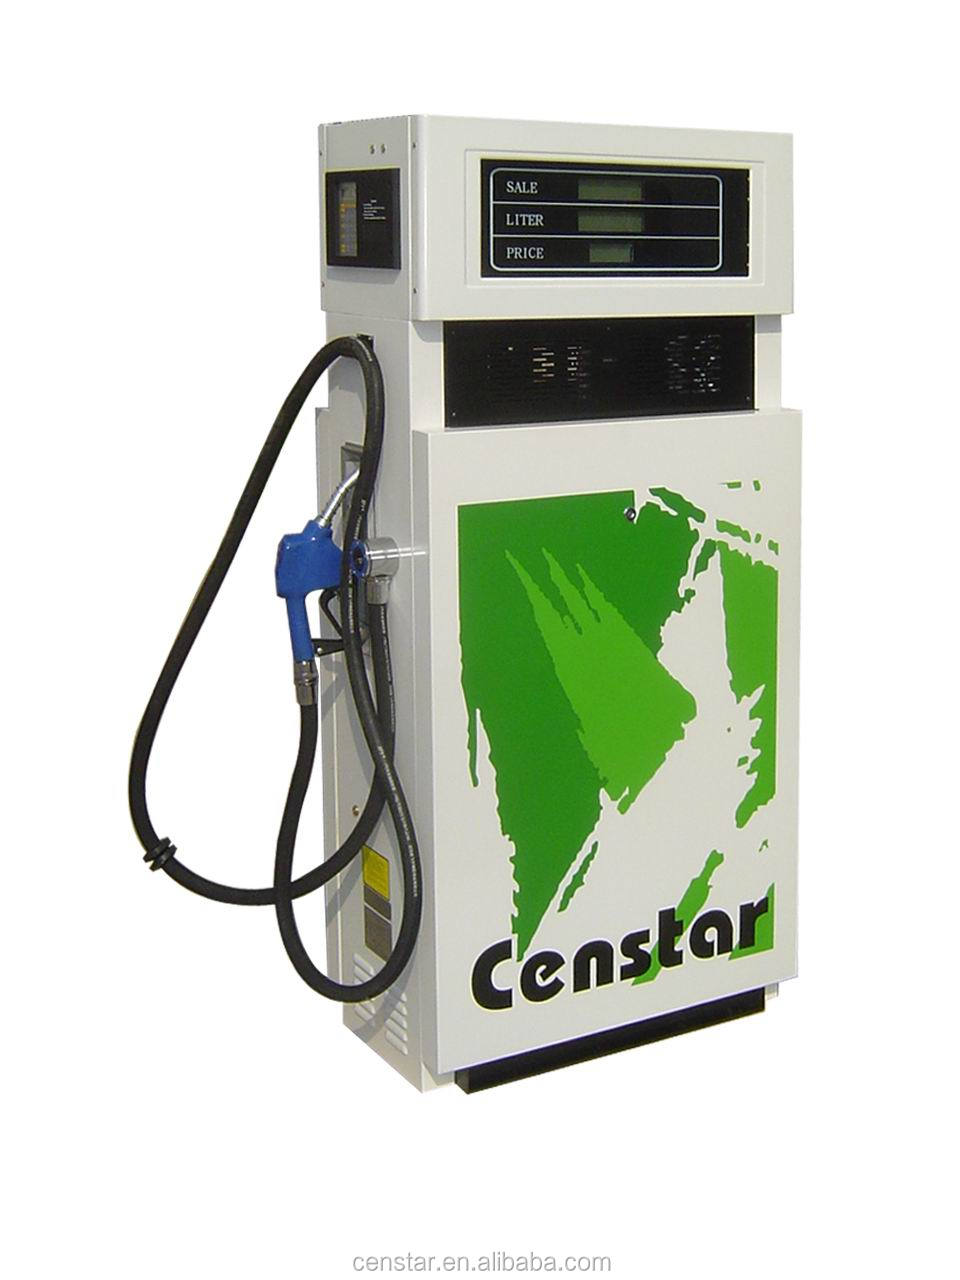 CS10 steel structure fuel pump calibration machine, Chinese famous stainless steel gas station pumps for sale